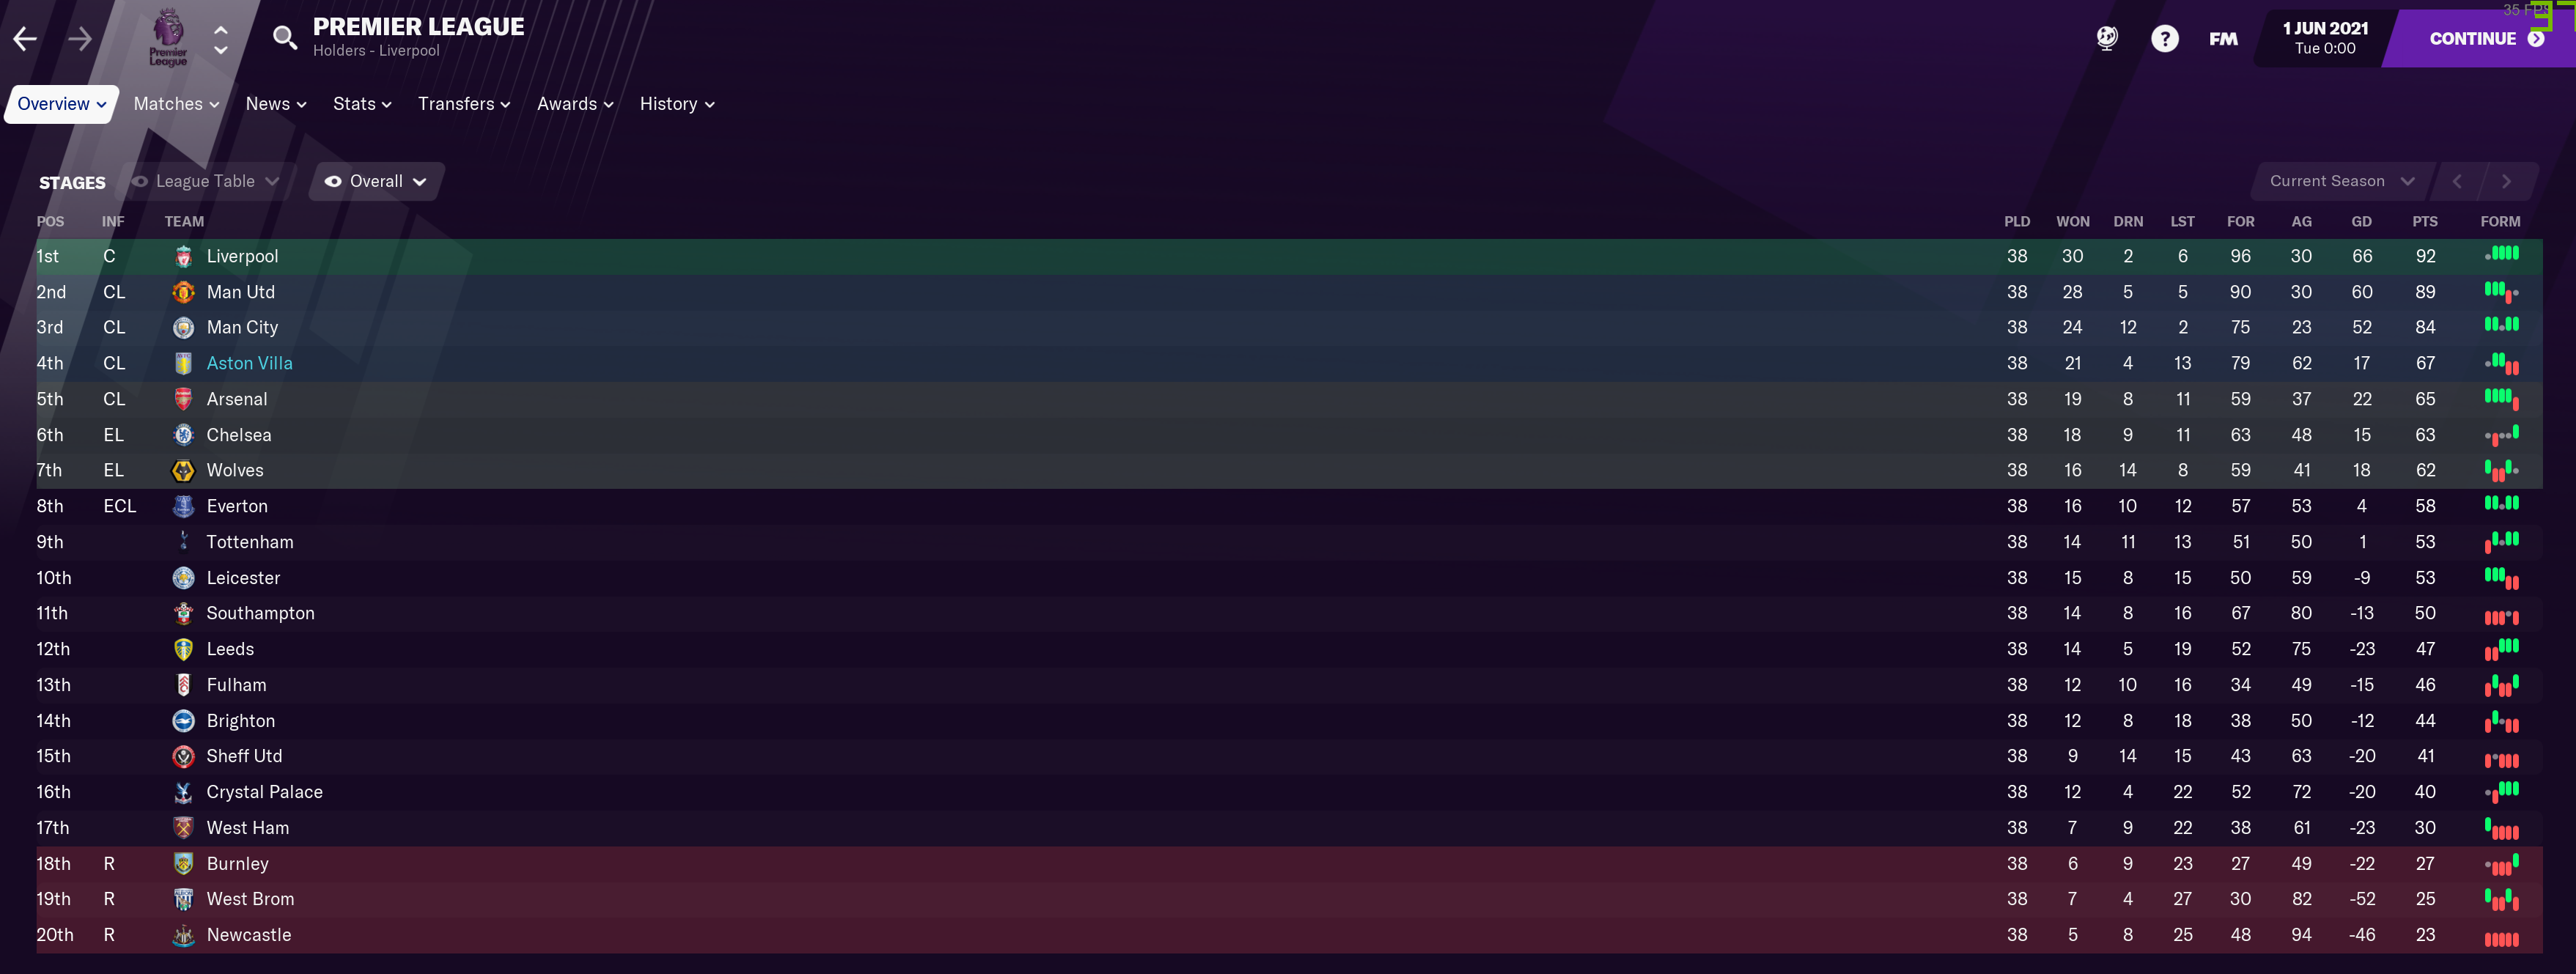 #17 Aston Villa In The Prem.PNG